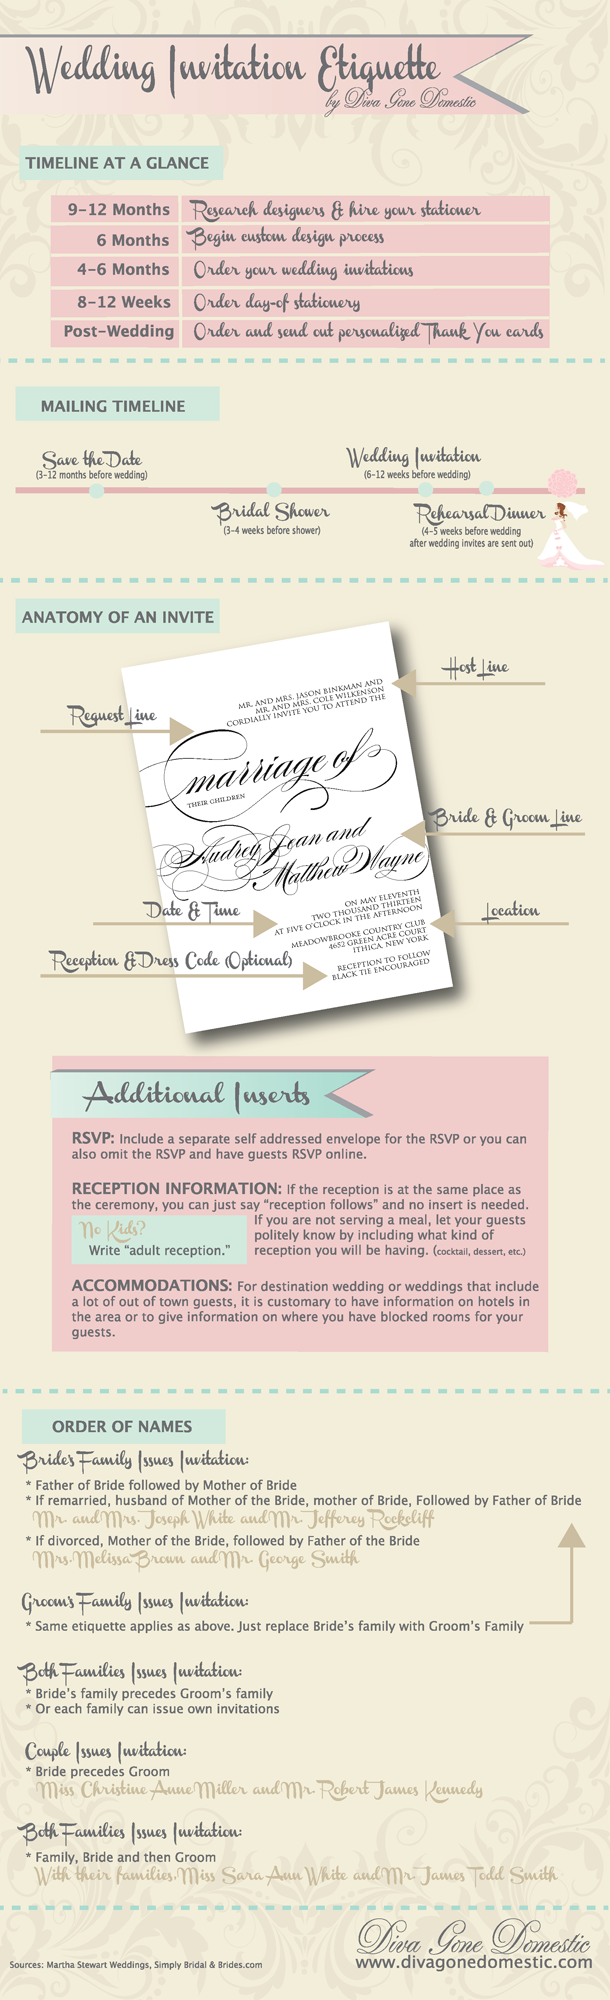 wedding invitation wording etiquette 25 informal wedding invitation wording ideas 9738